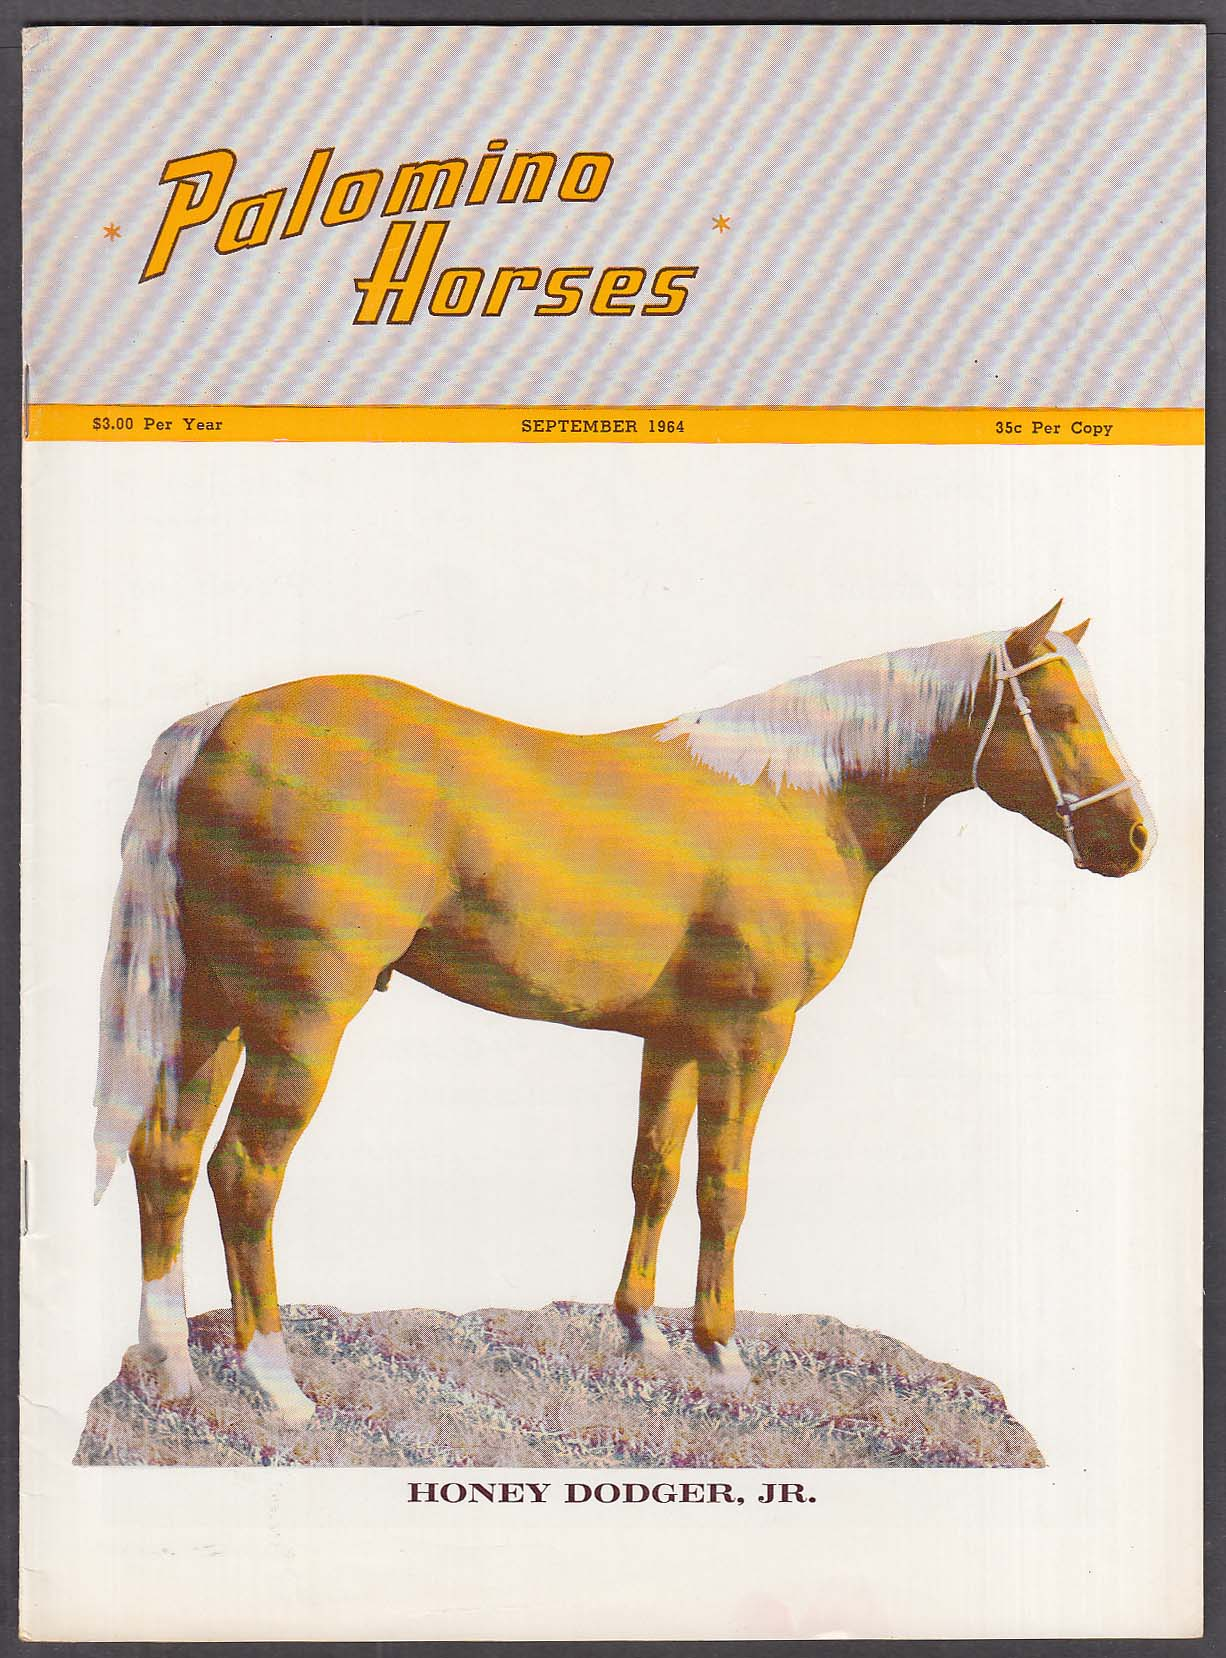 PALOMINO HORSES Honey Dodger Jr K Ranch 9 1964